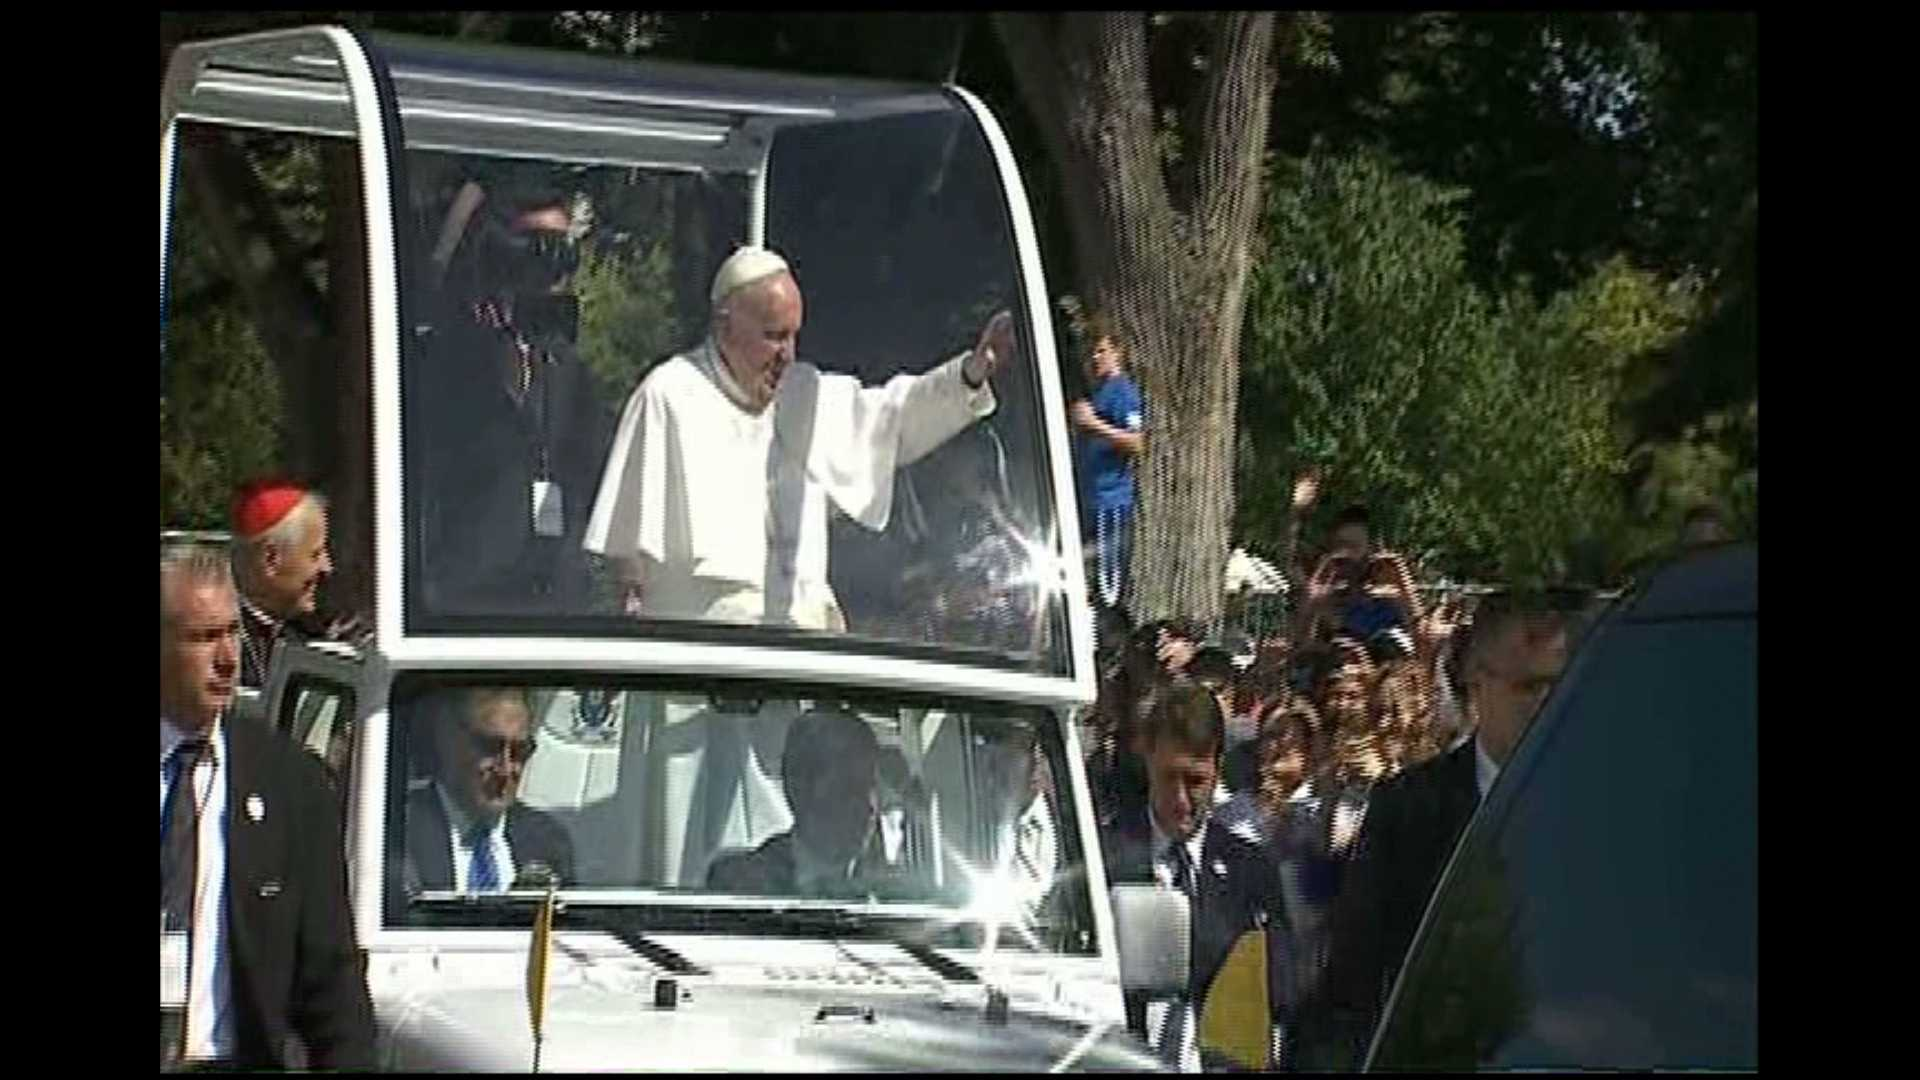 The pope rode in a Jeep and took part in a parade. Washington Archbishop Donald Wuerl, the former bishop of Pittsburgh, was seated next to him.